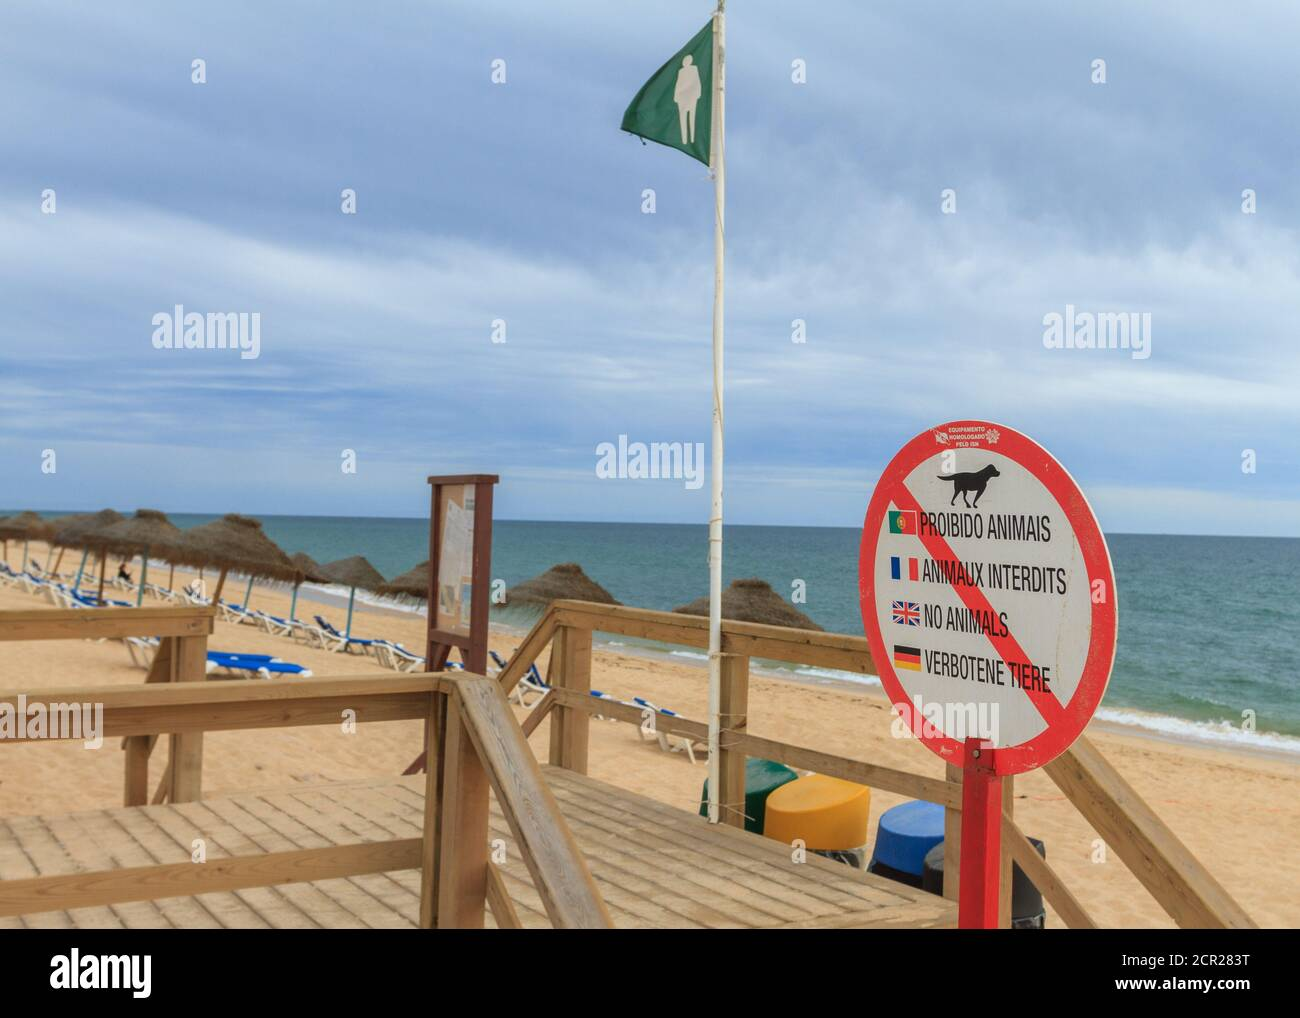 No animals sign at the beach entrance in Faro, Portugal. Multi-language sign; written in Portuguese, French, English and German. Stock Photo